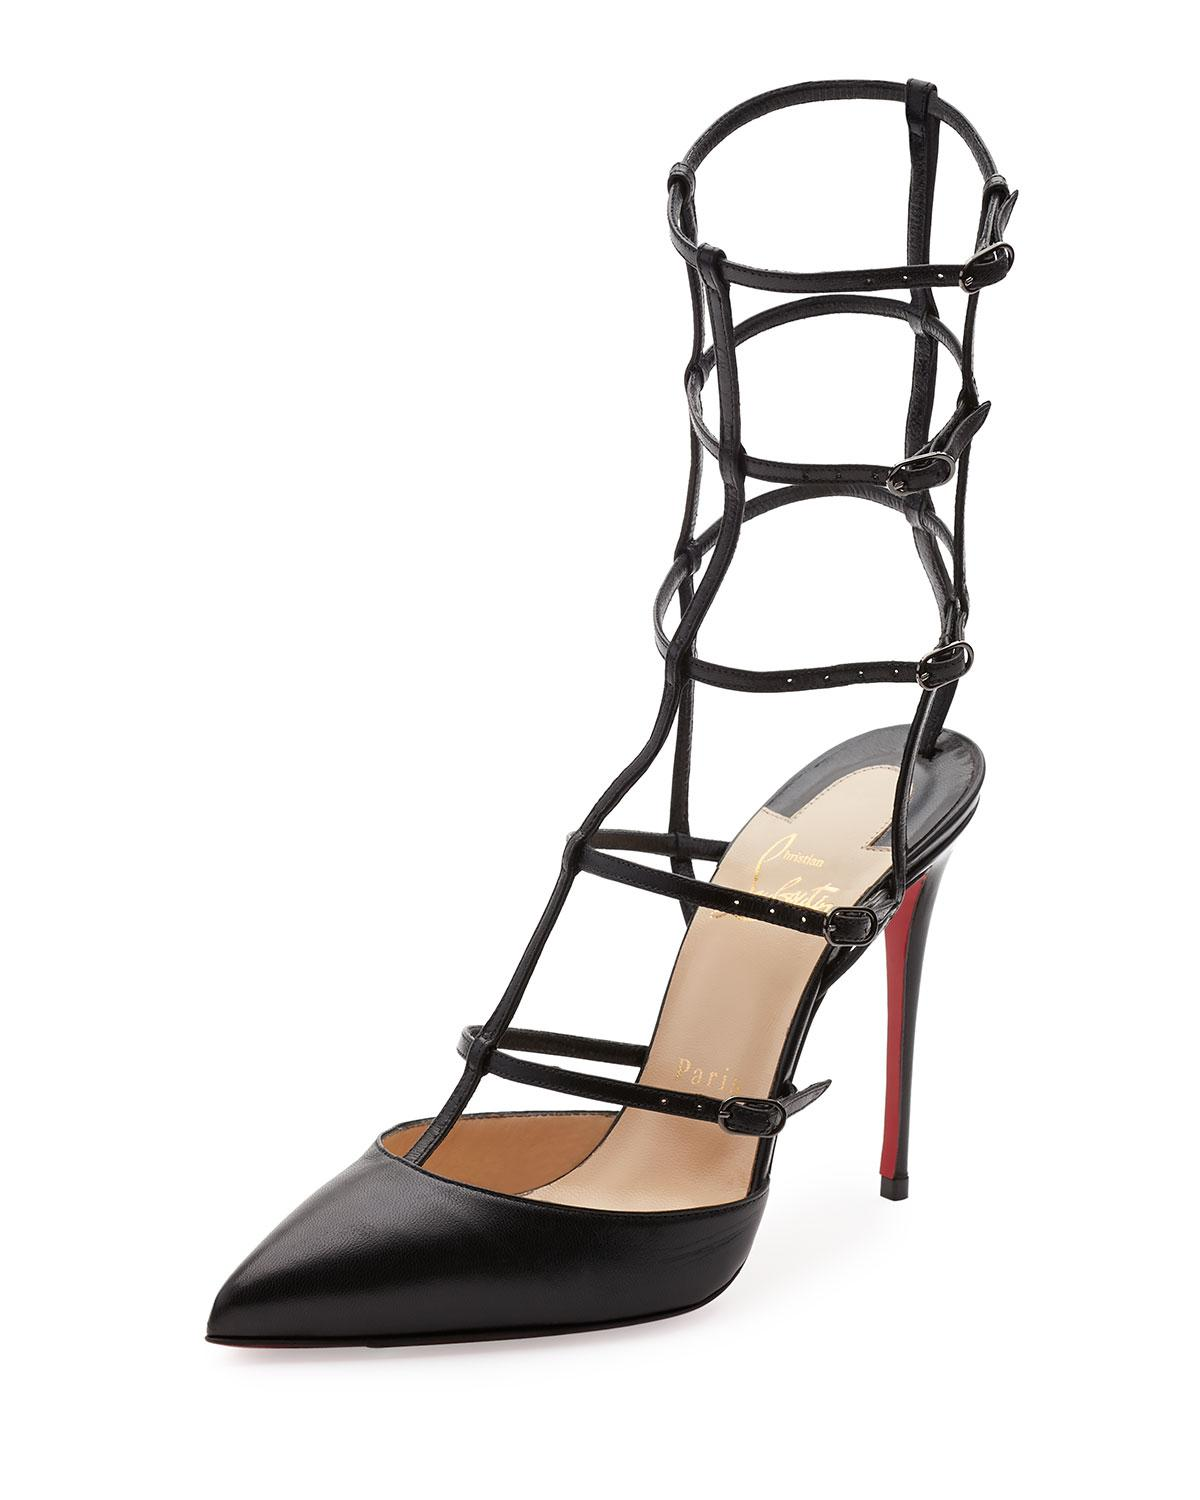 Christian Louboutin Black New Kadreyana Caged Red 41 Pumps Size US 11 Regular (M, B)